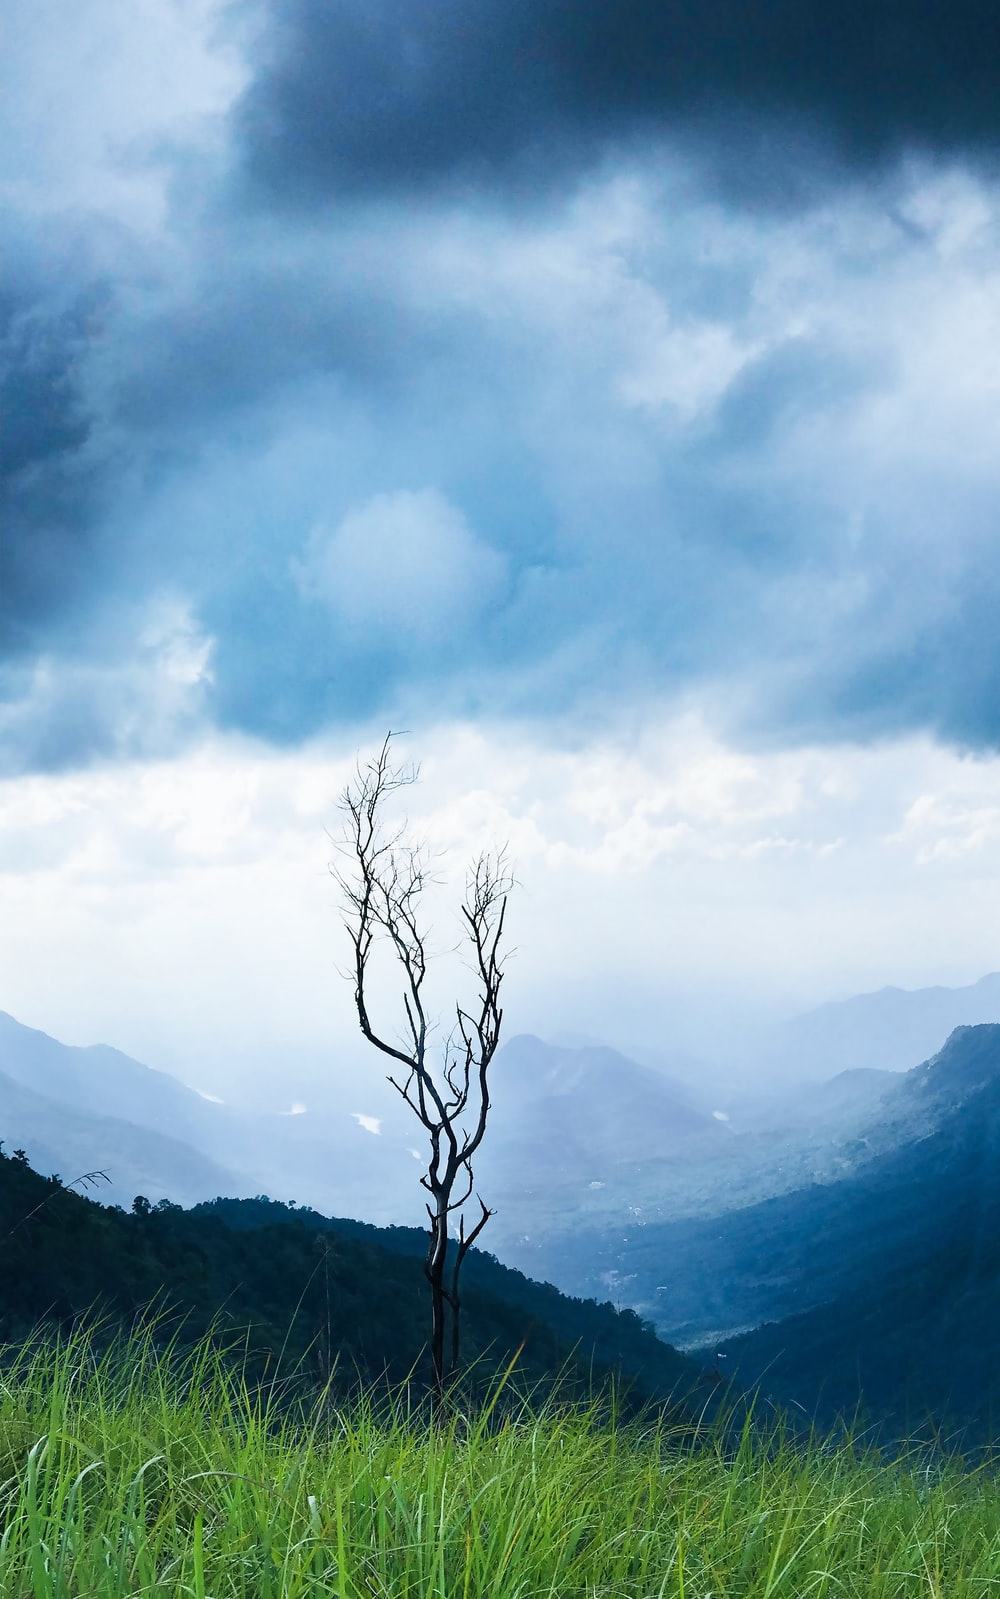 bare tree on mountain under cloudy sky during daytime